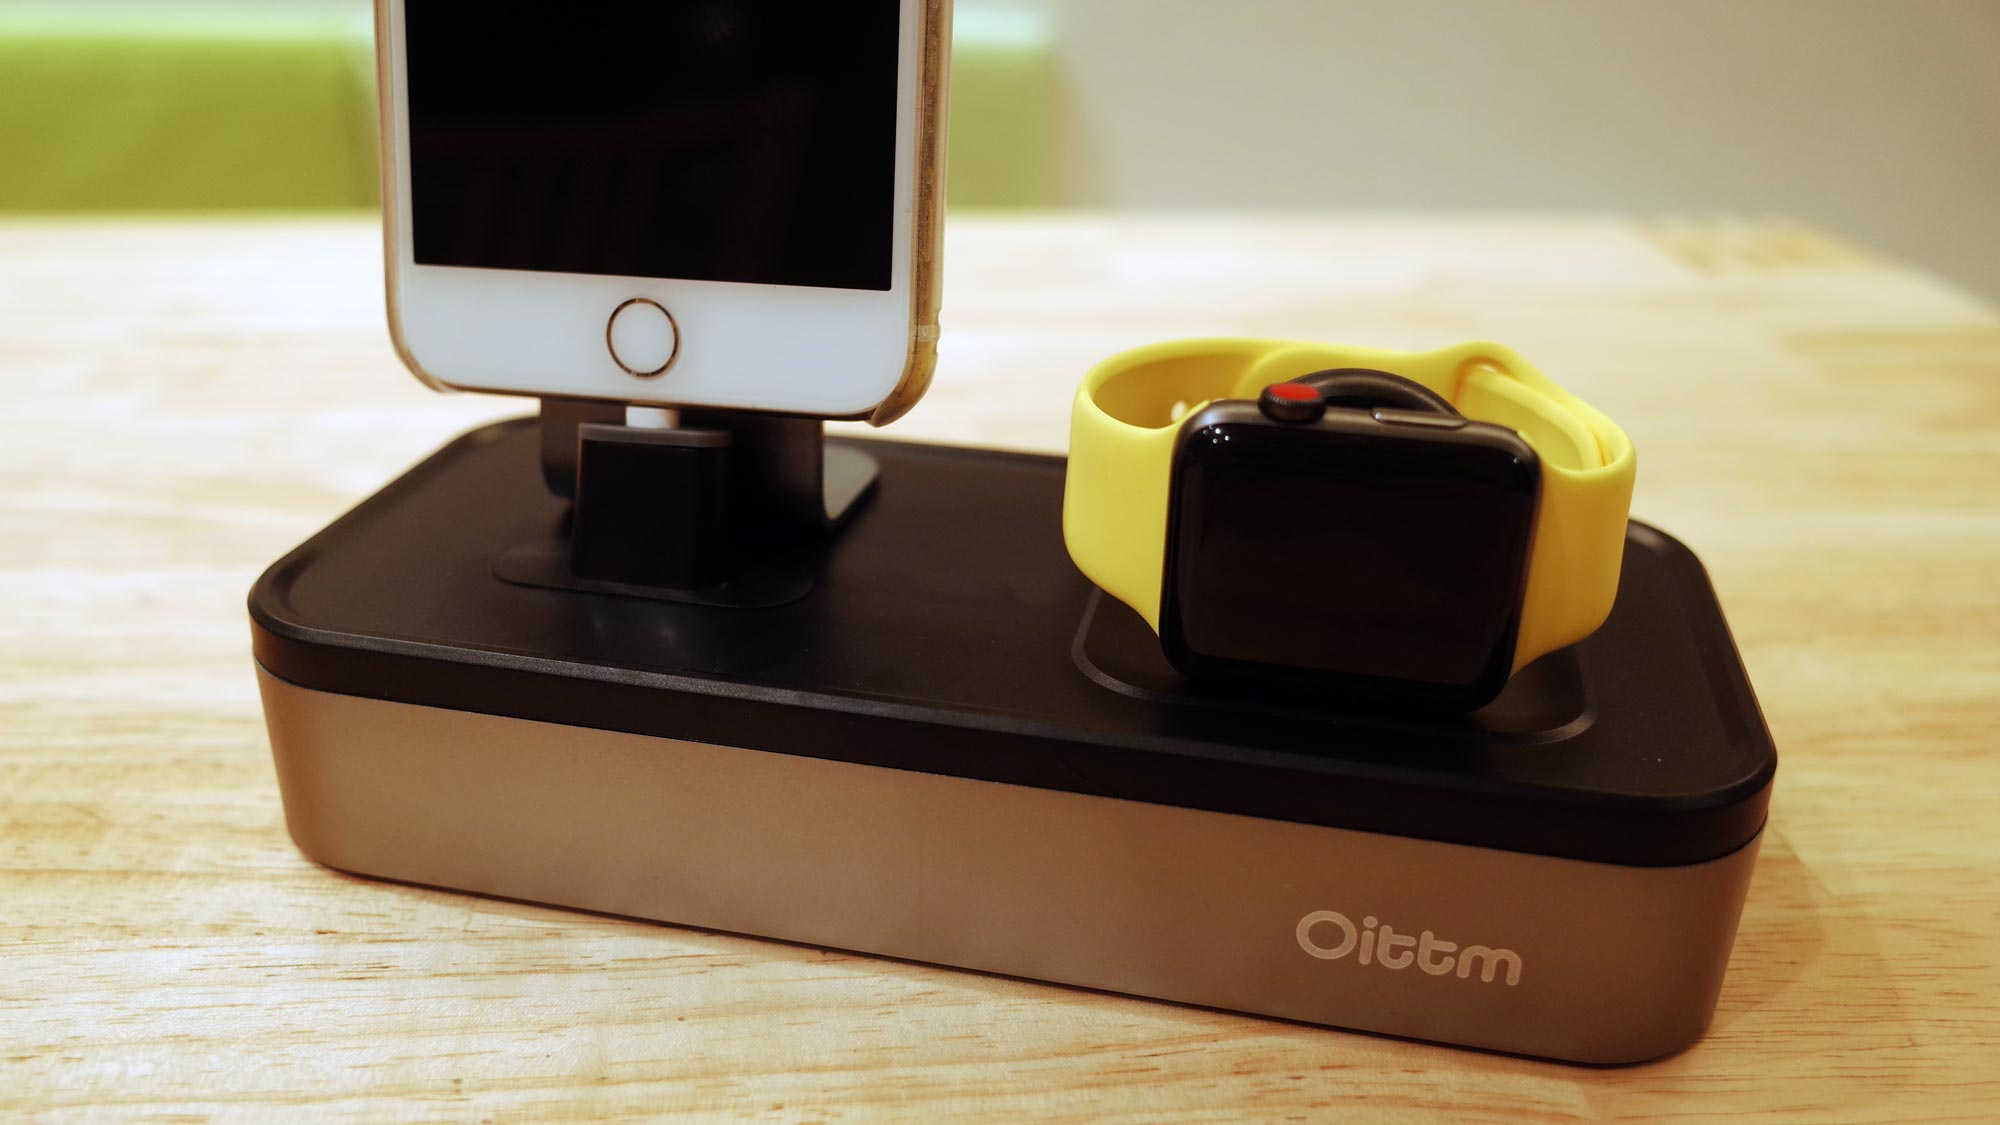 Oittm applewatch stand 01